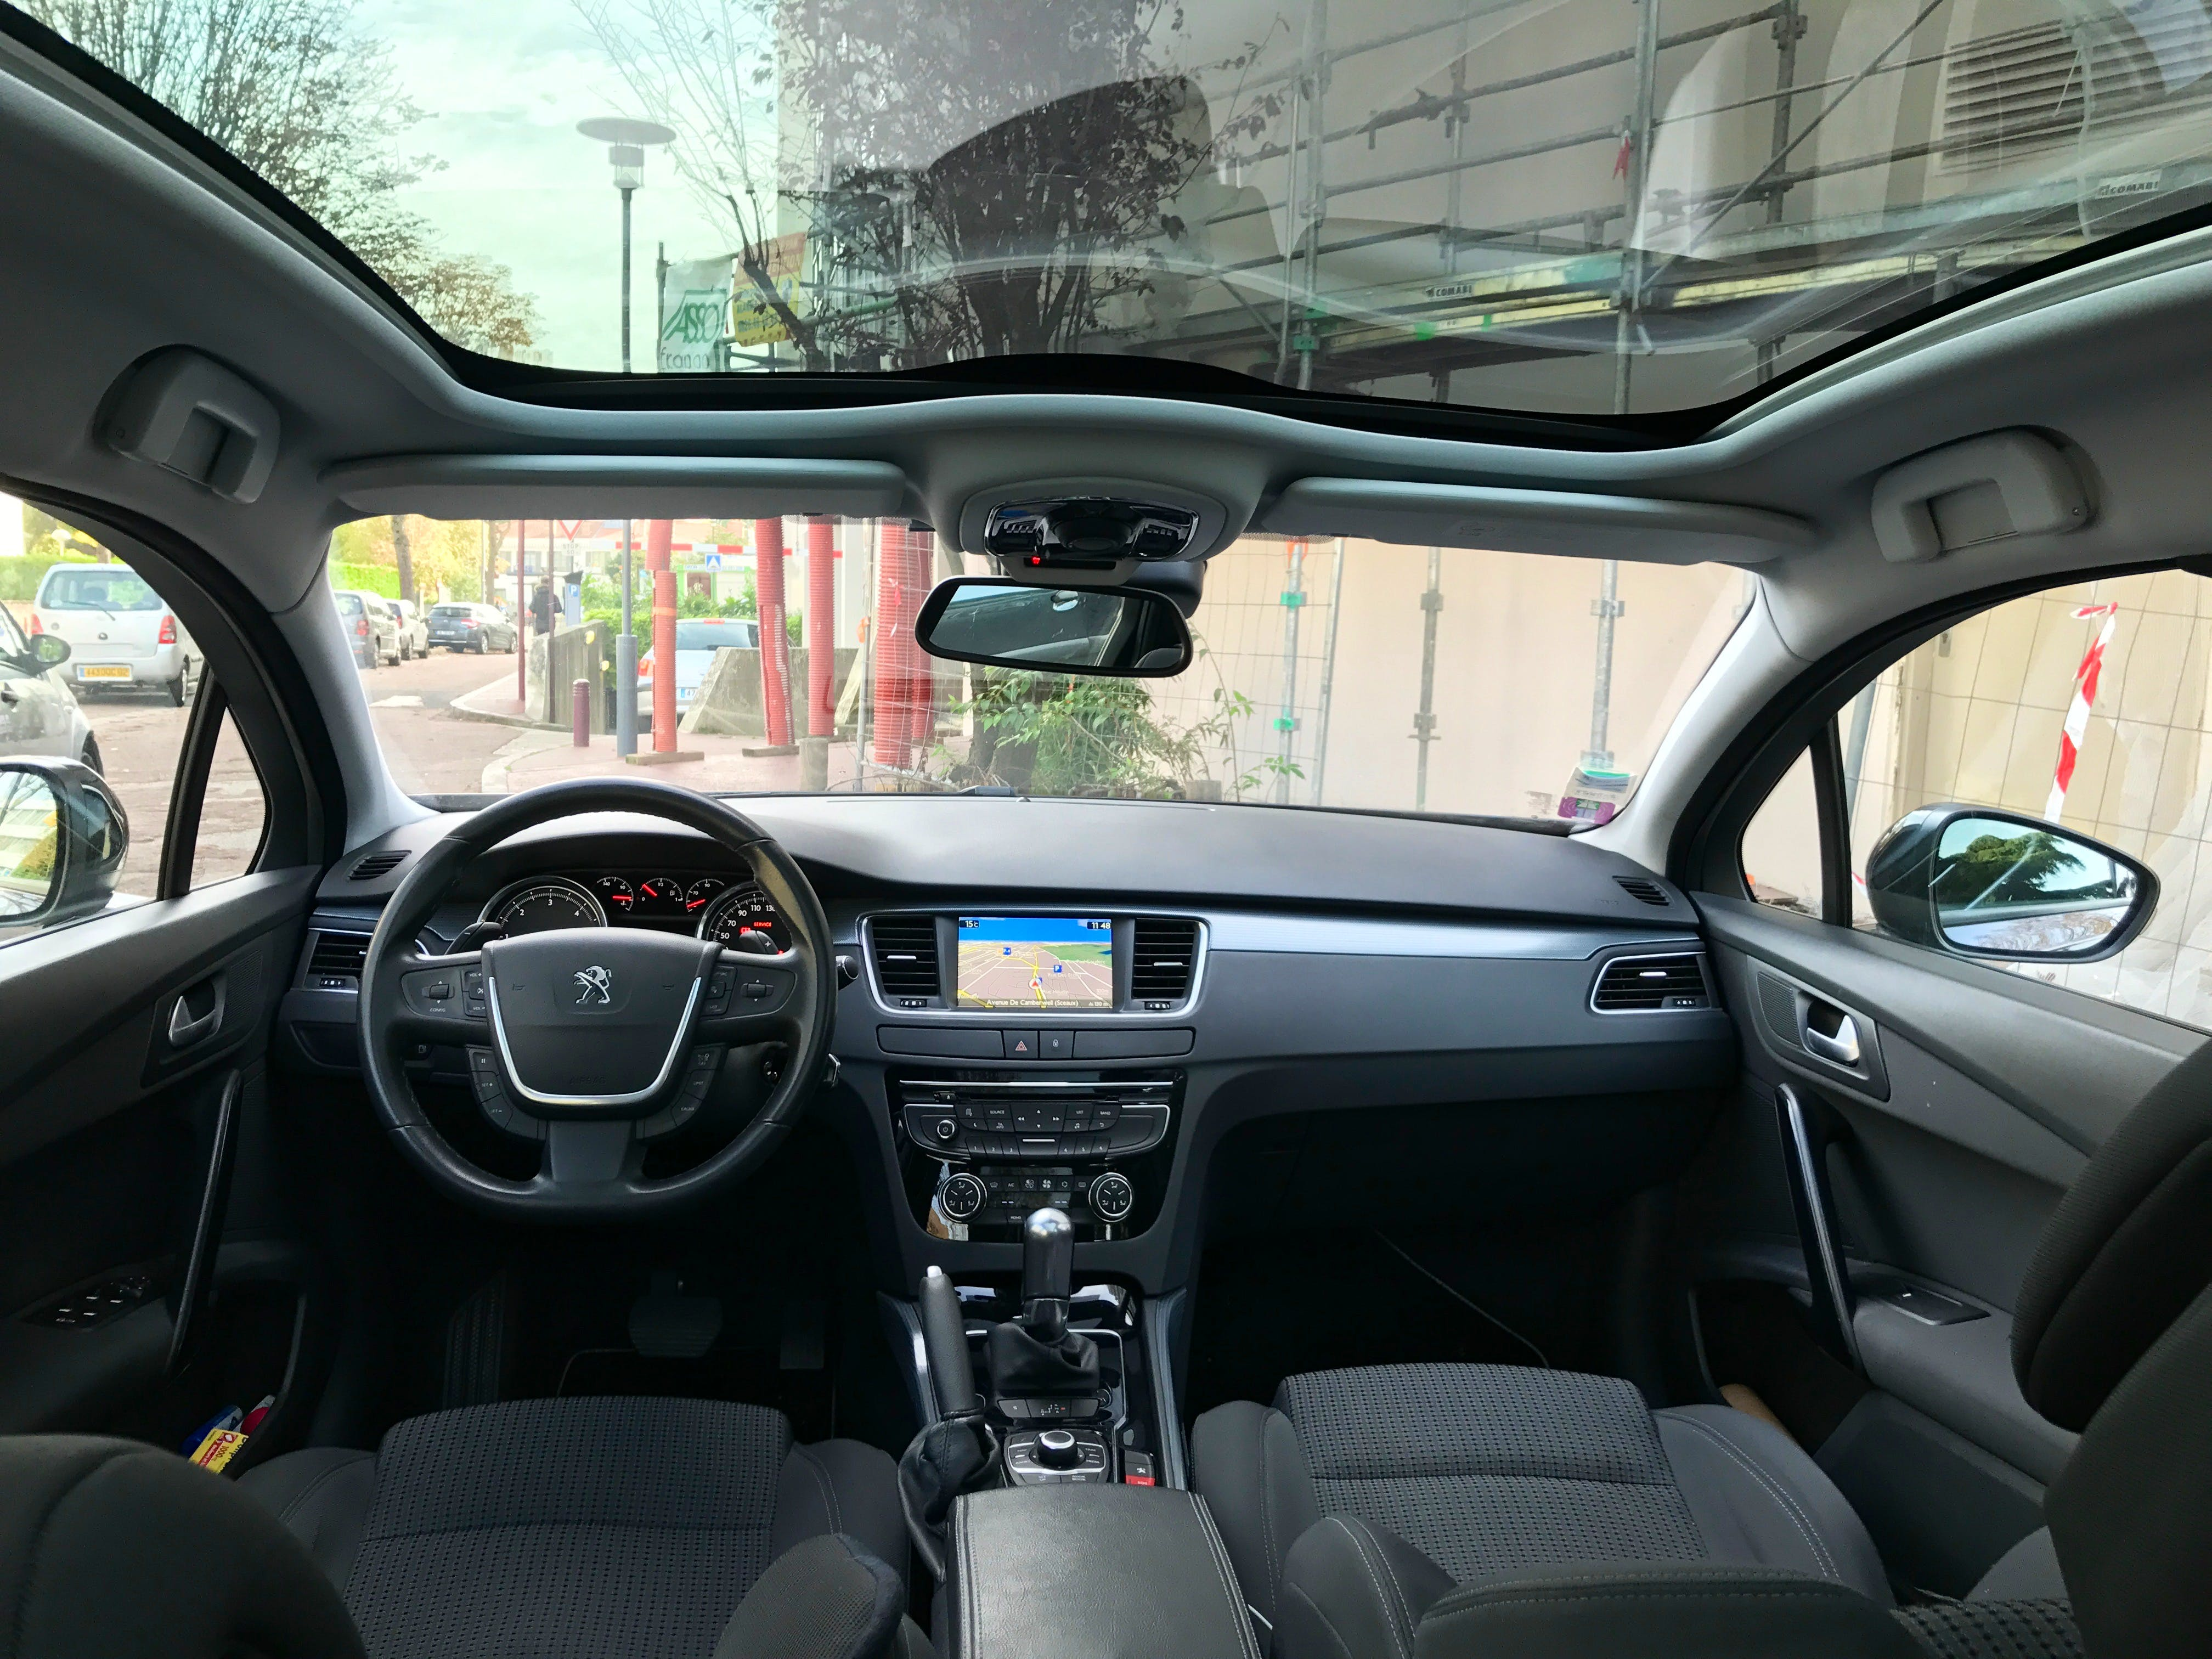 Peugeot 508 SW 1.6 HDI business pack avec GPS